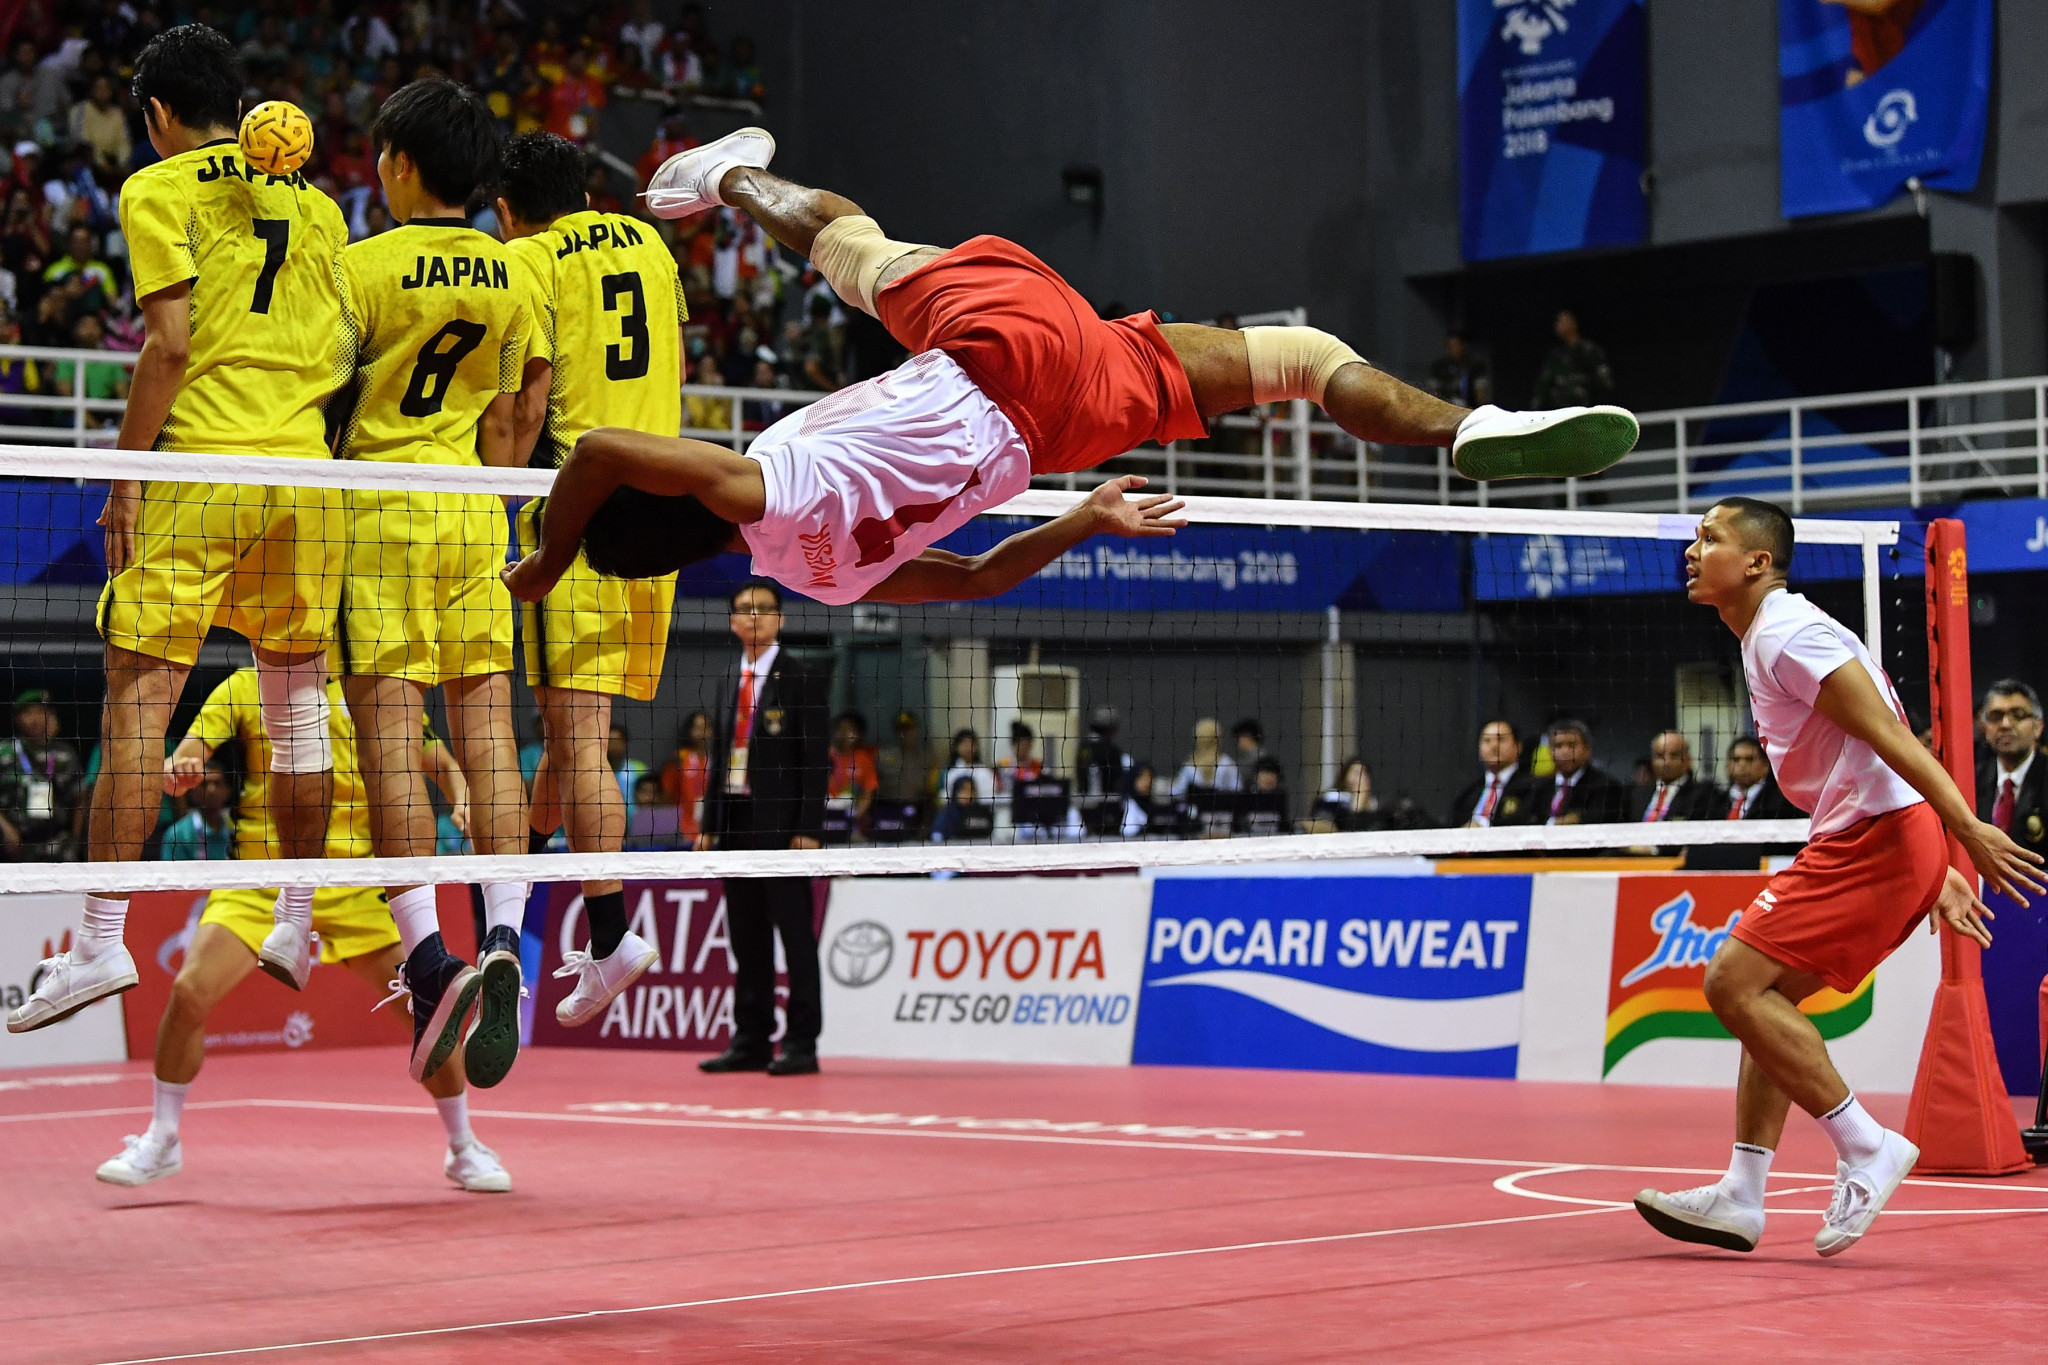 Indonesia's men's quadrant sepaktakraw team, in white, won their final against Japan to gain the country's 31st gold medal of the Games ©Getty Images